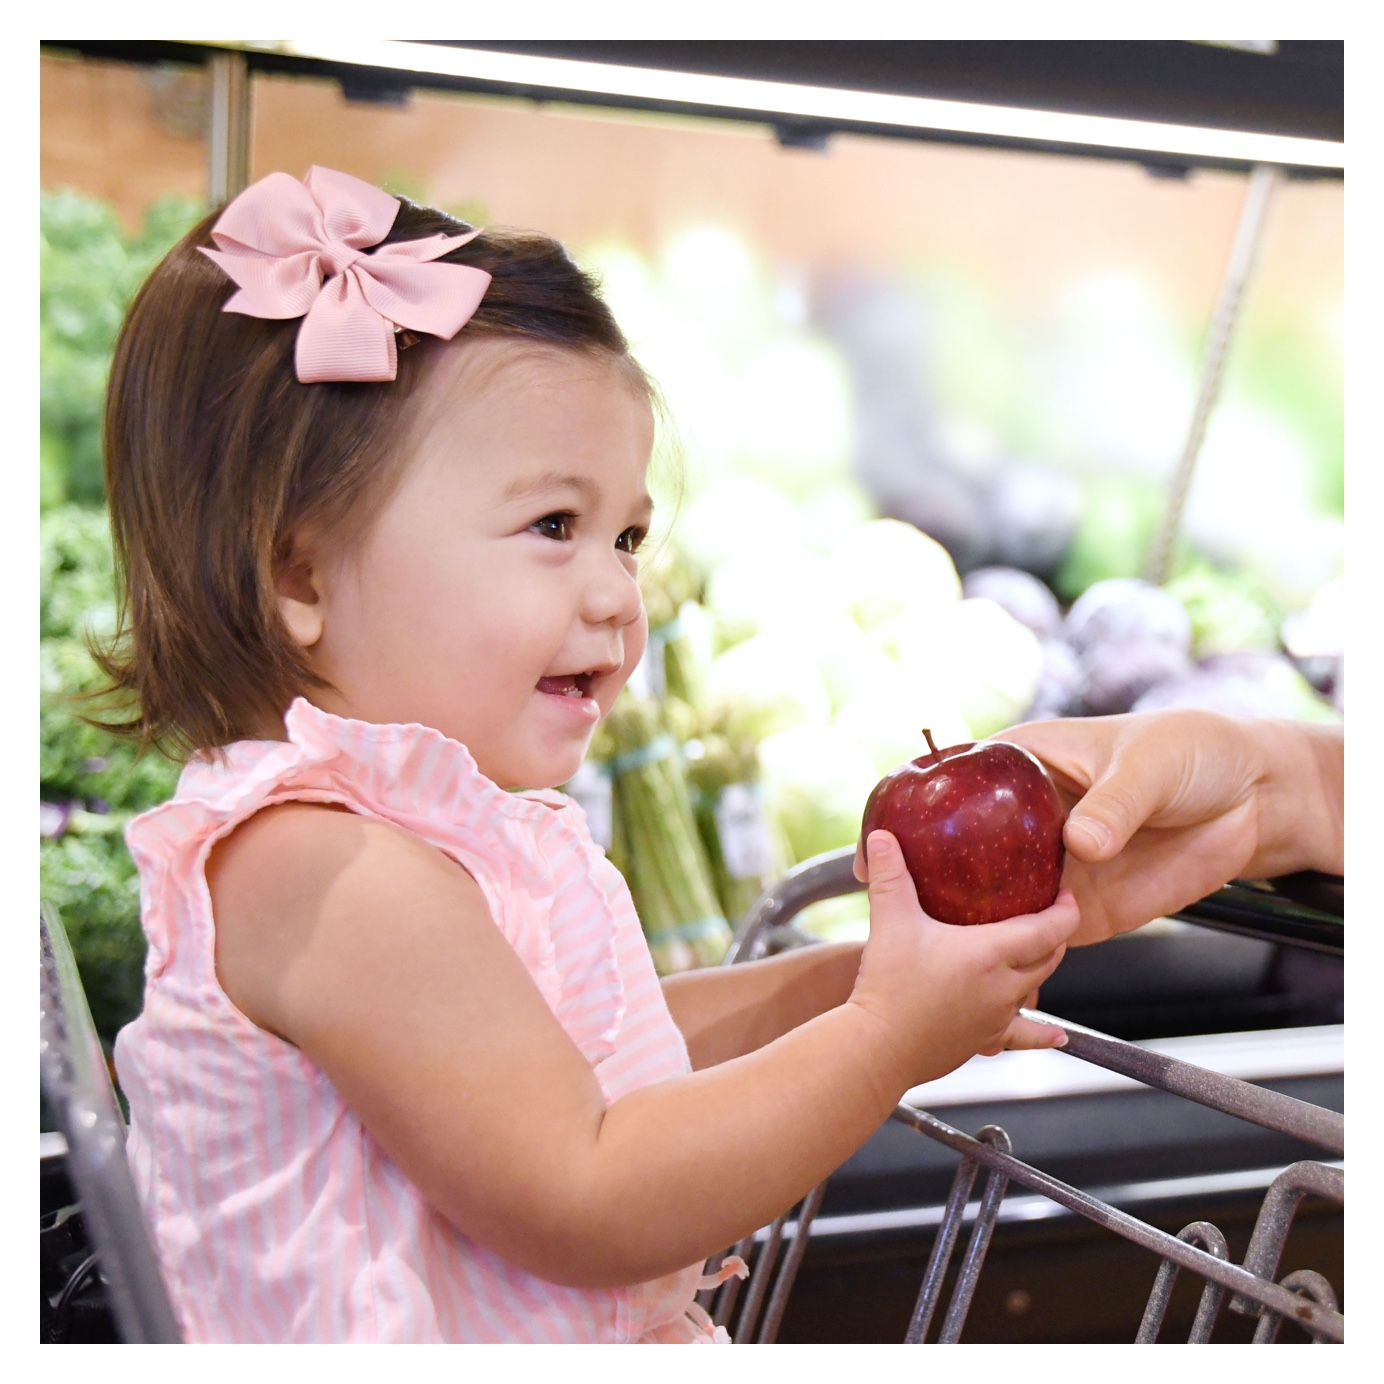 a little girl holding an apple in the Produce Department and smiling